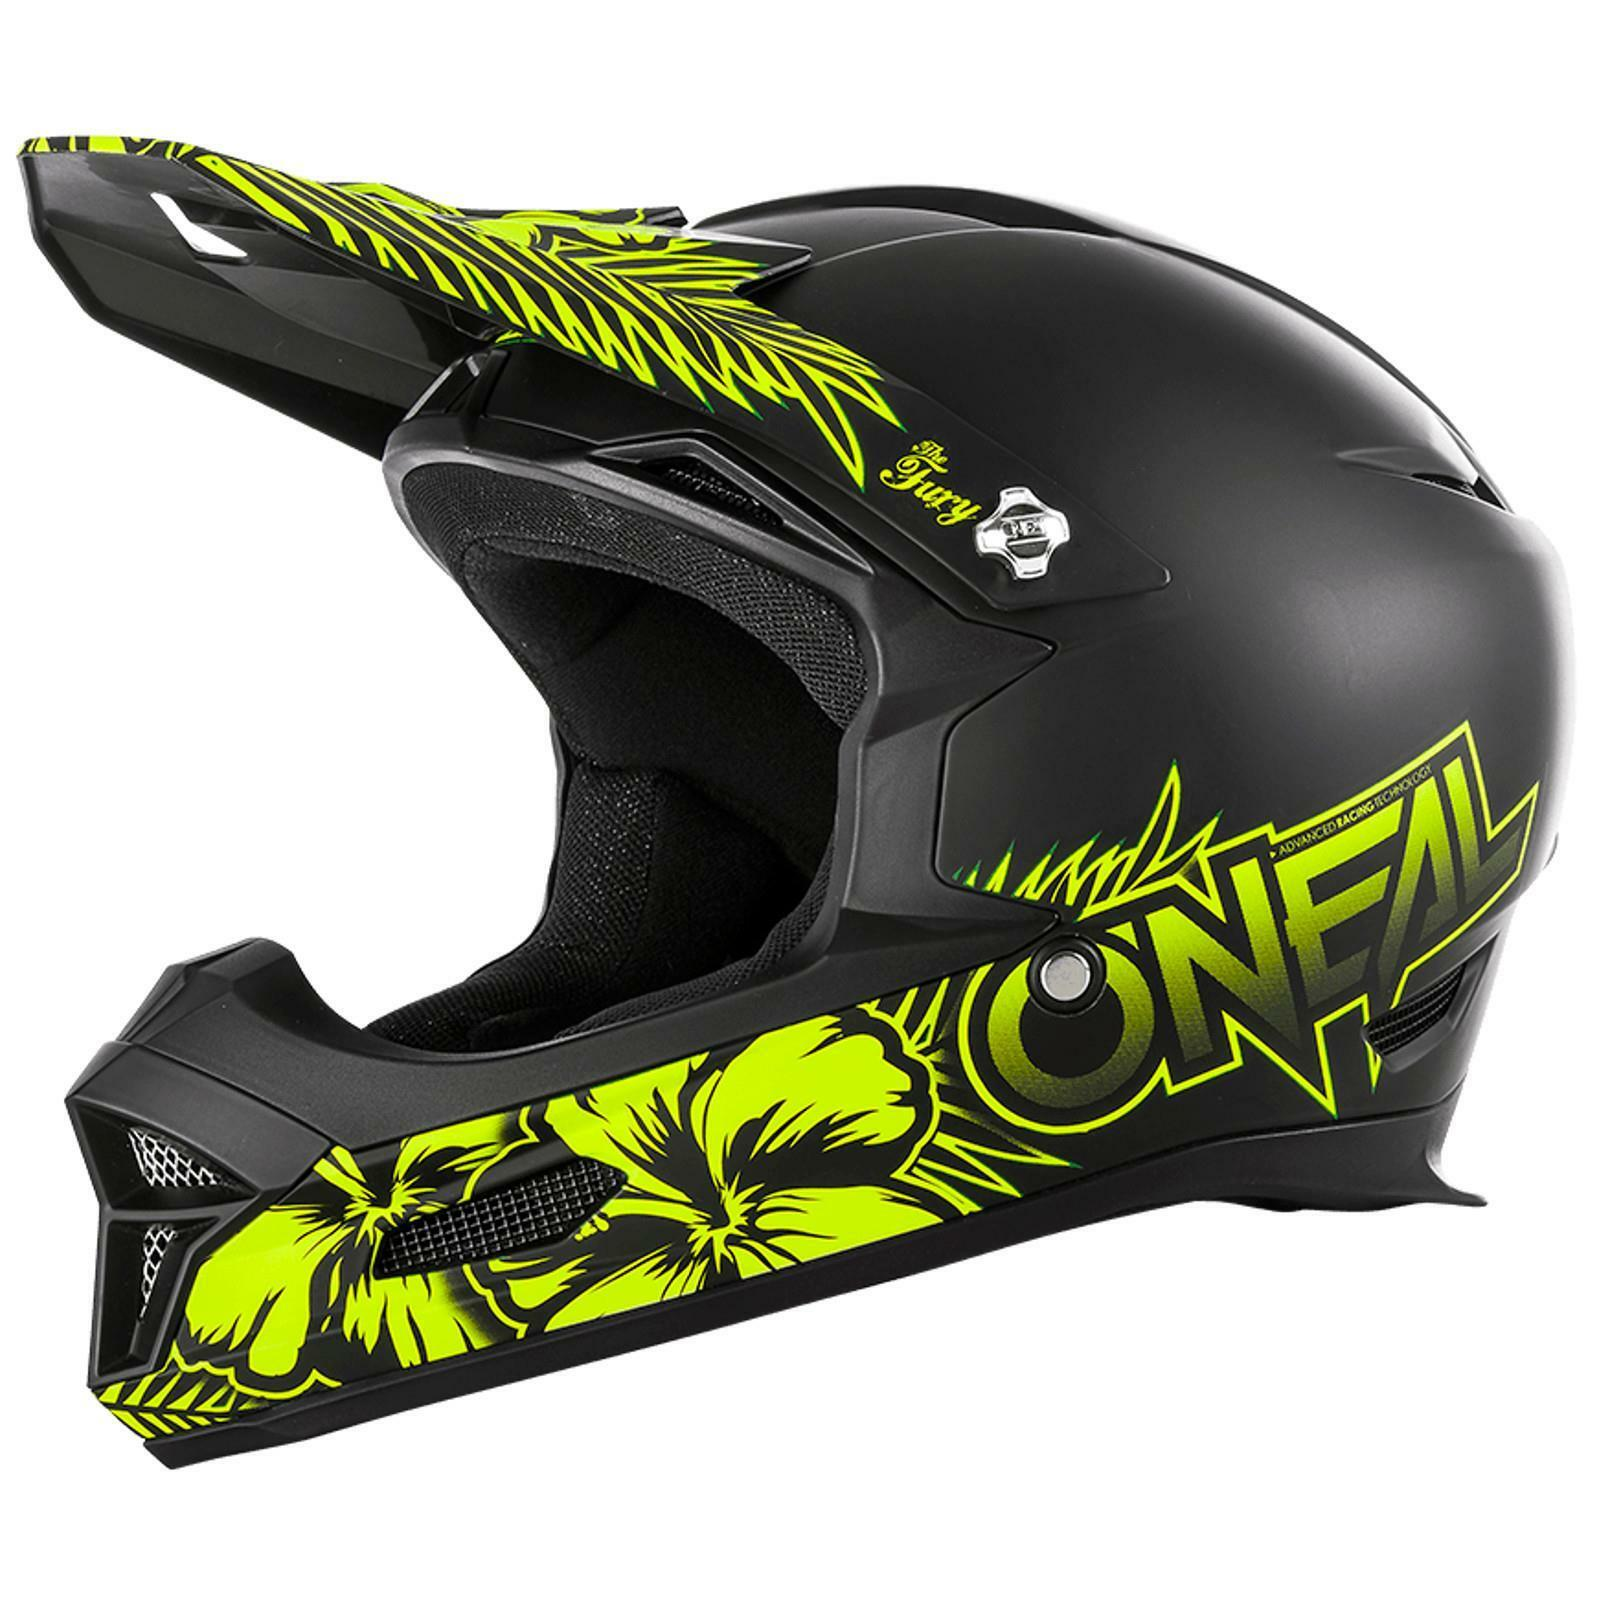 ONEAL Fury RL CASCO Maui ACTION CAM NERO MTB DOWNHILL DOWNHILL DOWNHILL Fullface MOUNTAIN BIKE d3af36